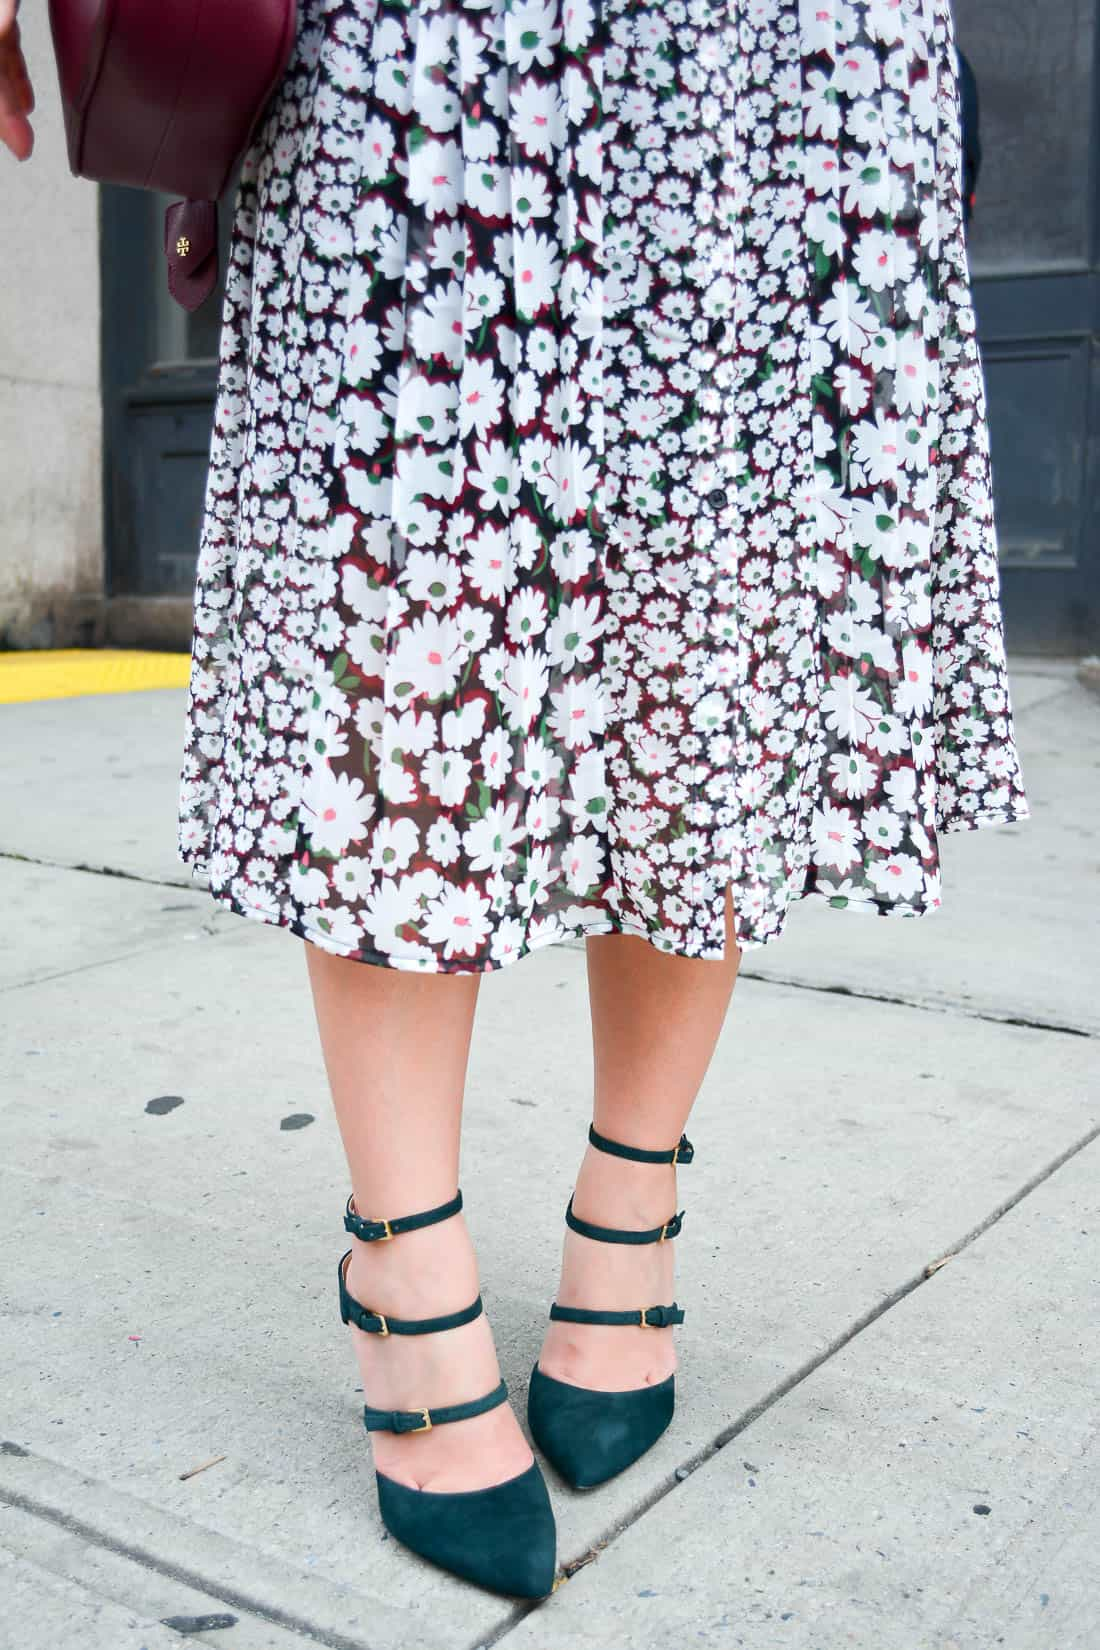 New York Fashion Week, NYFW, French Connection Floral Dress, Club Monaco Ankle Strap Heels, Fall Style, Chicago Blogger